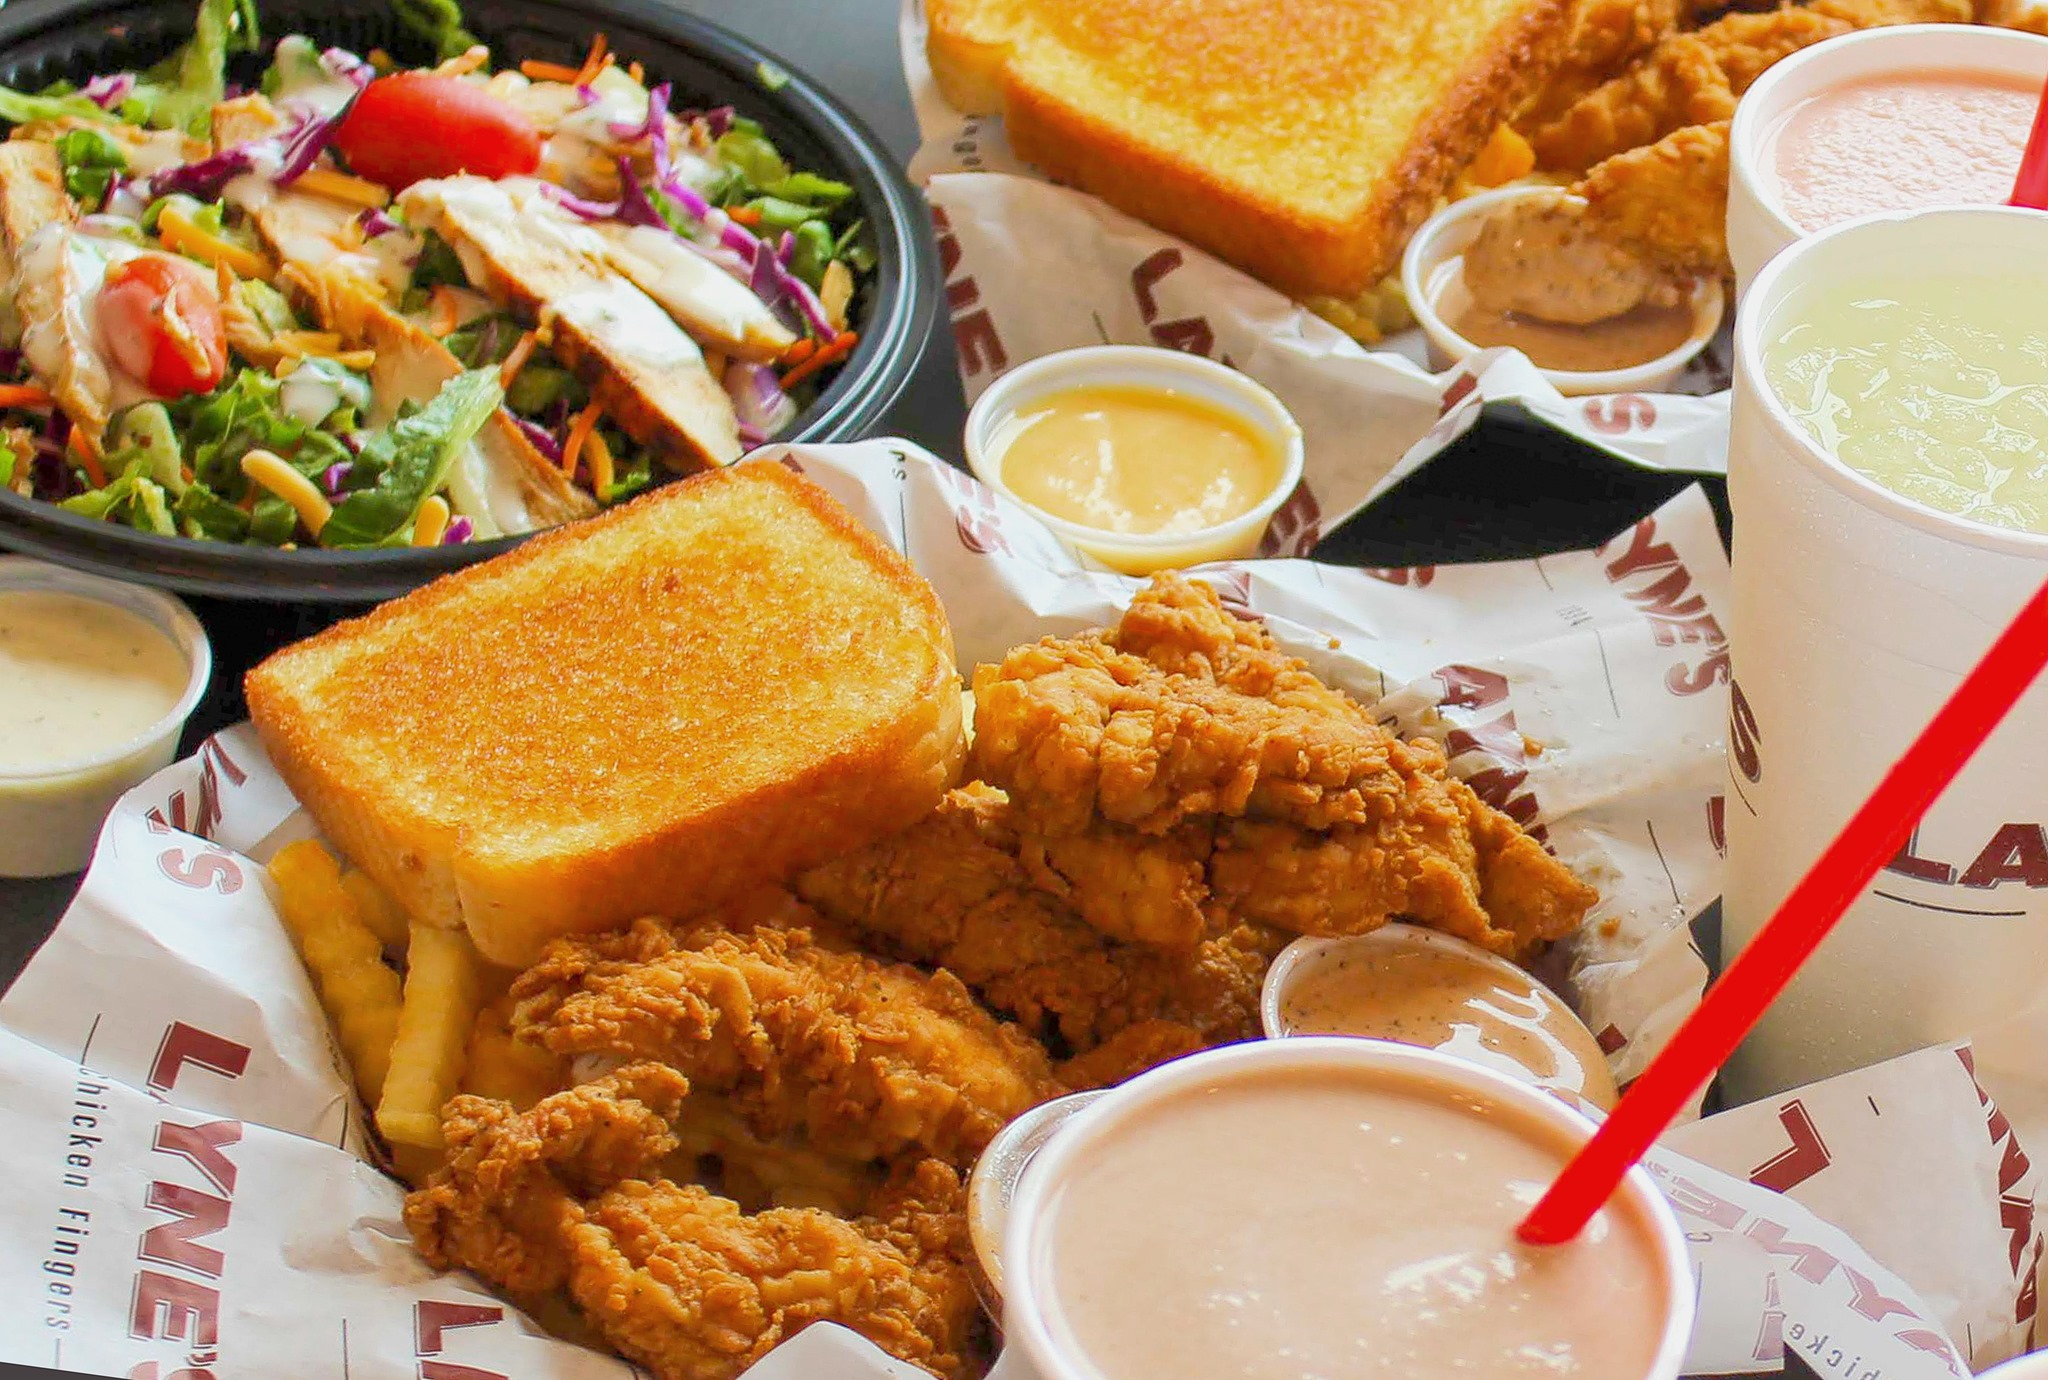 A basket of chicken tenders served with Texas toast and a milkshake. A salad sits in the background.